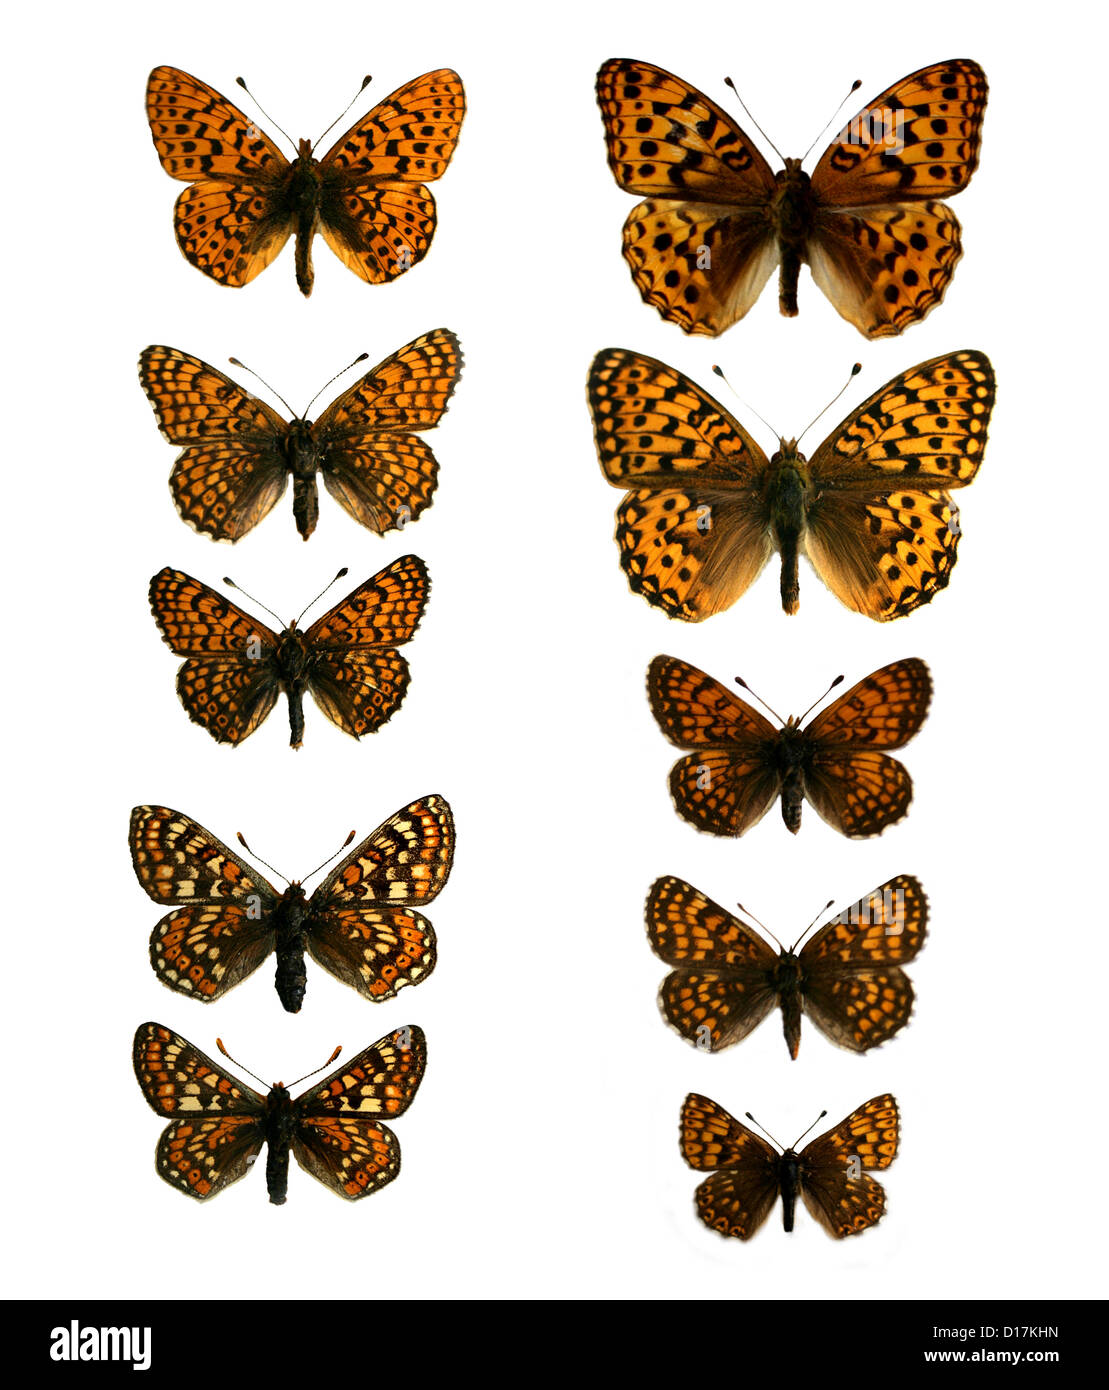 A Group of Mounted Specimen Fritillary Butterflies. Nymphalidae, Lepidoptera. - Stock Image